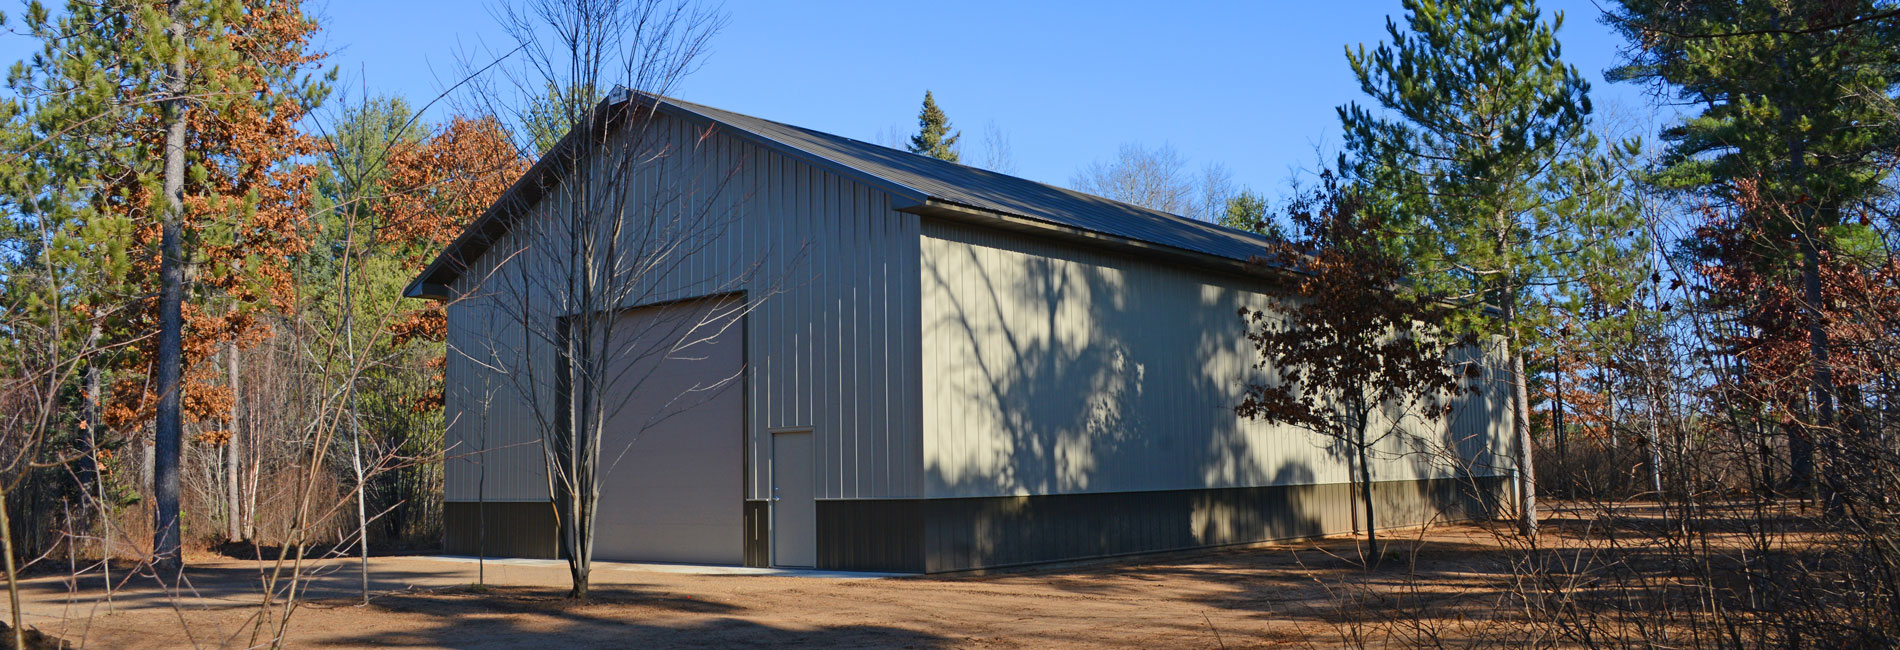 Pole Barn Shed Construction